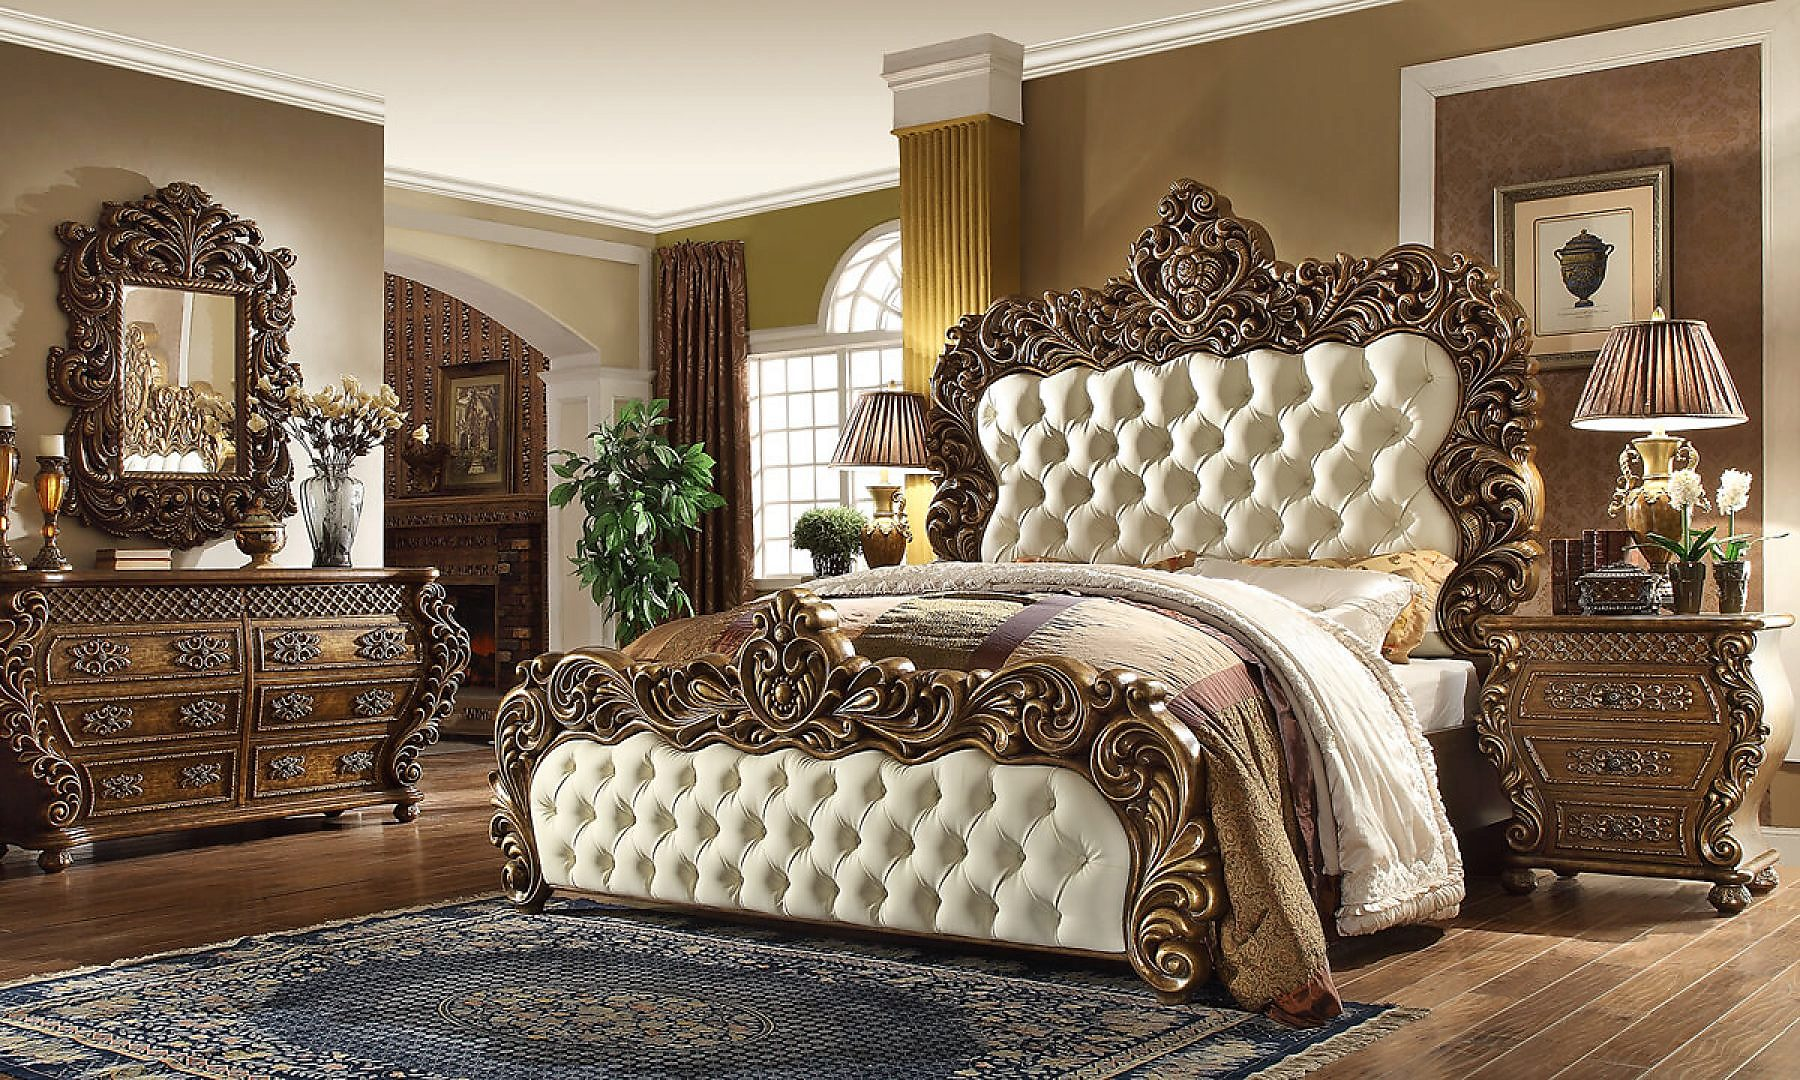 Traditional Eastern King Bedroom Set 5 PCS in Brown with White Leather Traditional Style Homey Design HD-8011